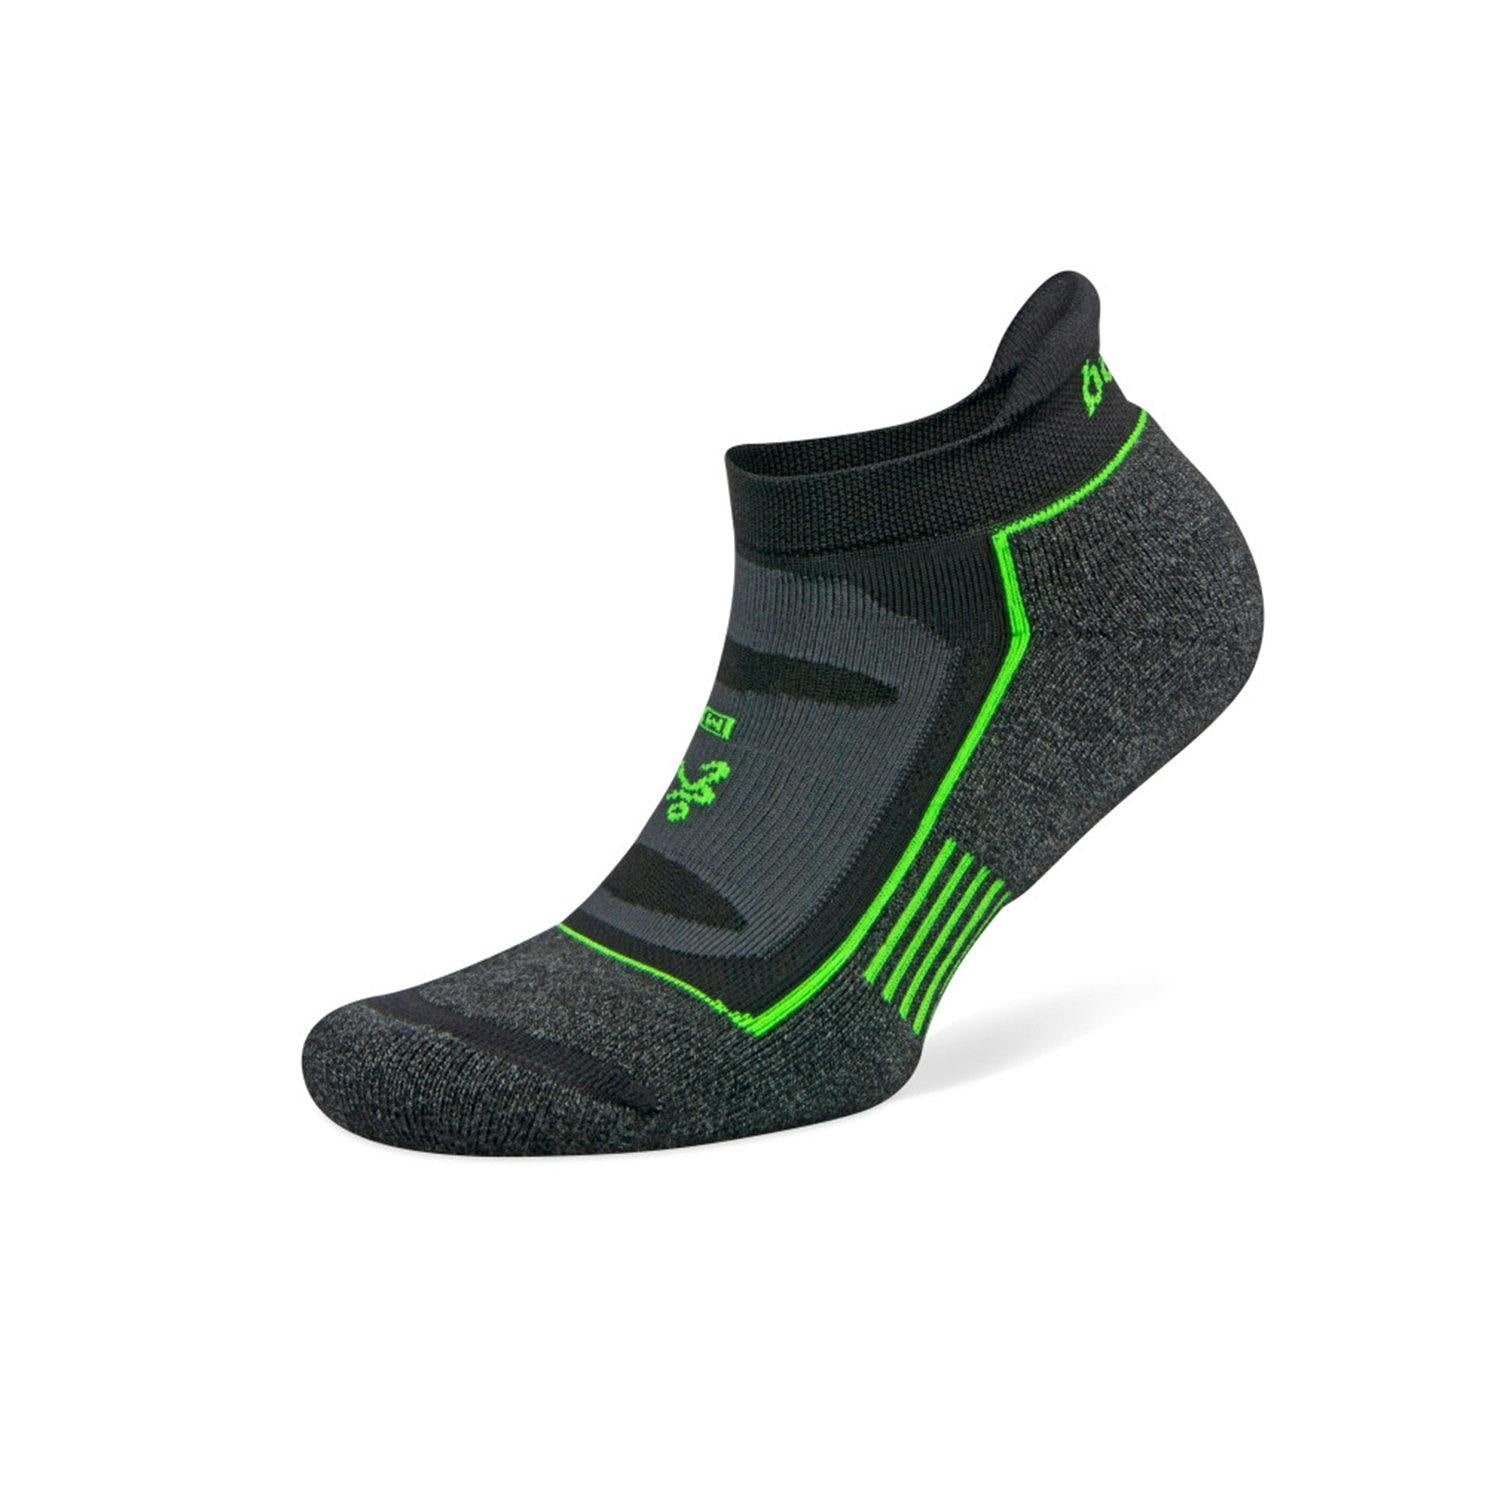 Balega Blister Resist No Show Socks - Charcoal/Black